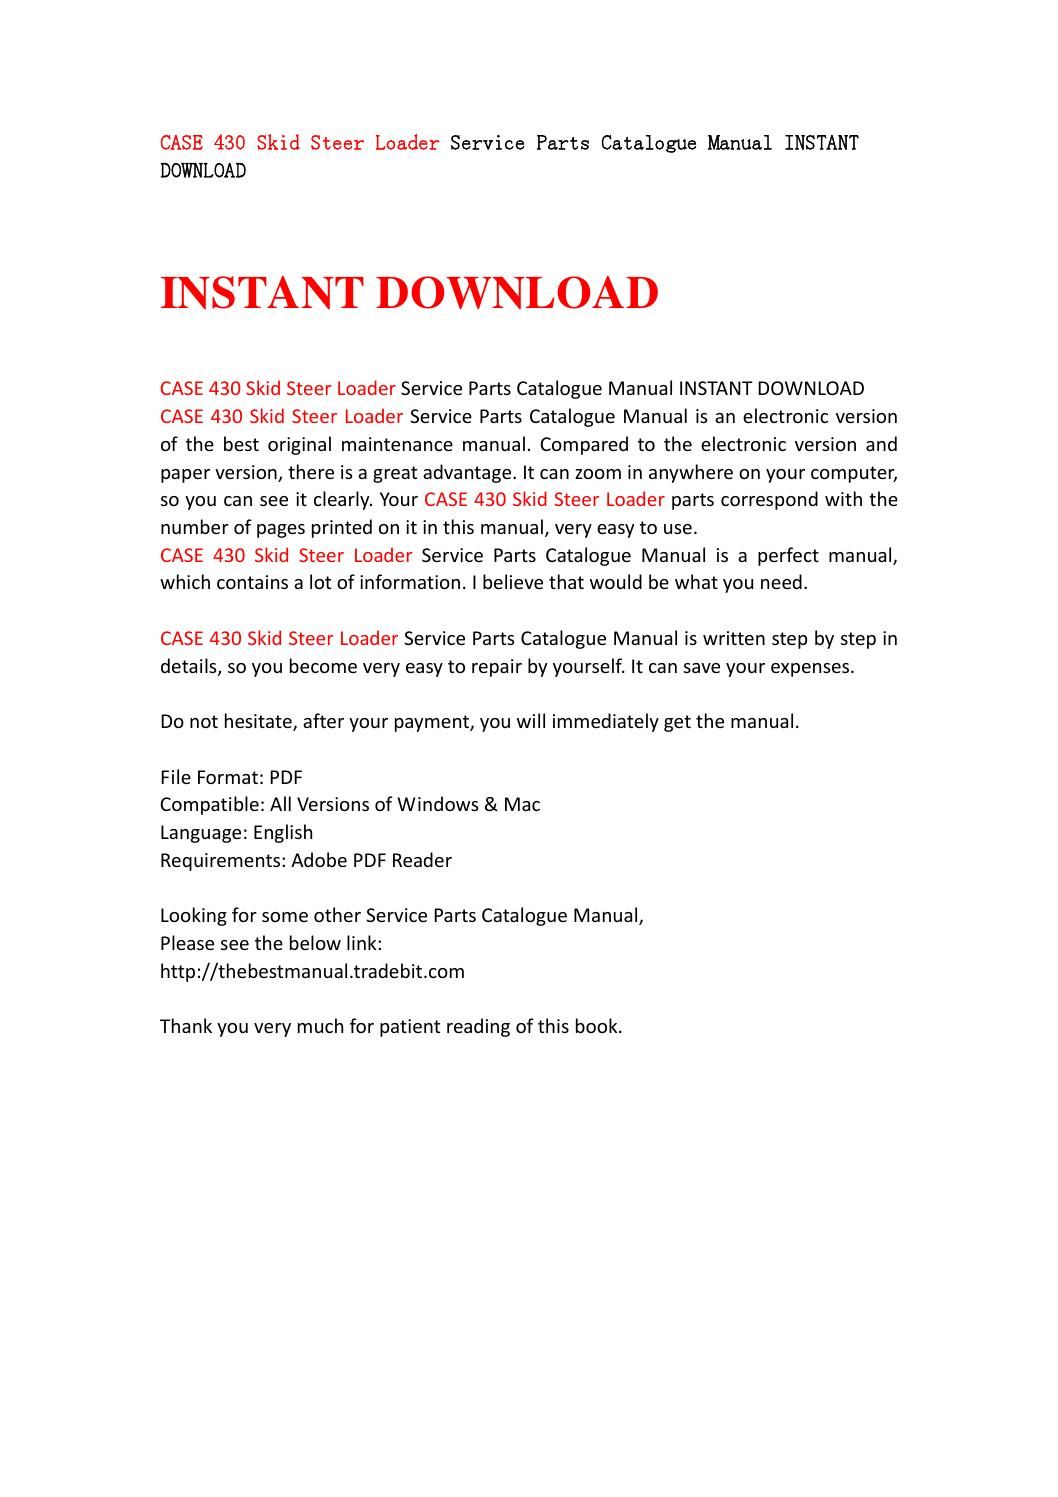 Case 430 skid steer loader service parts catalogue manual instant download  by jfsgebf - issuu